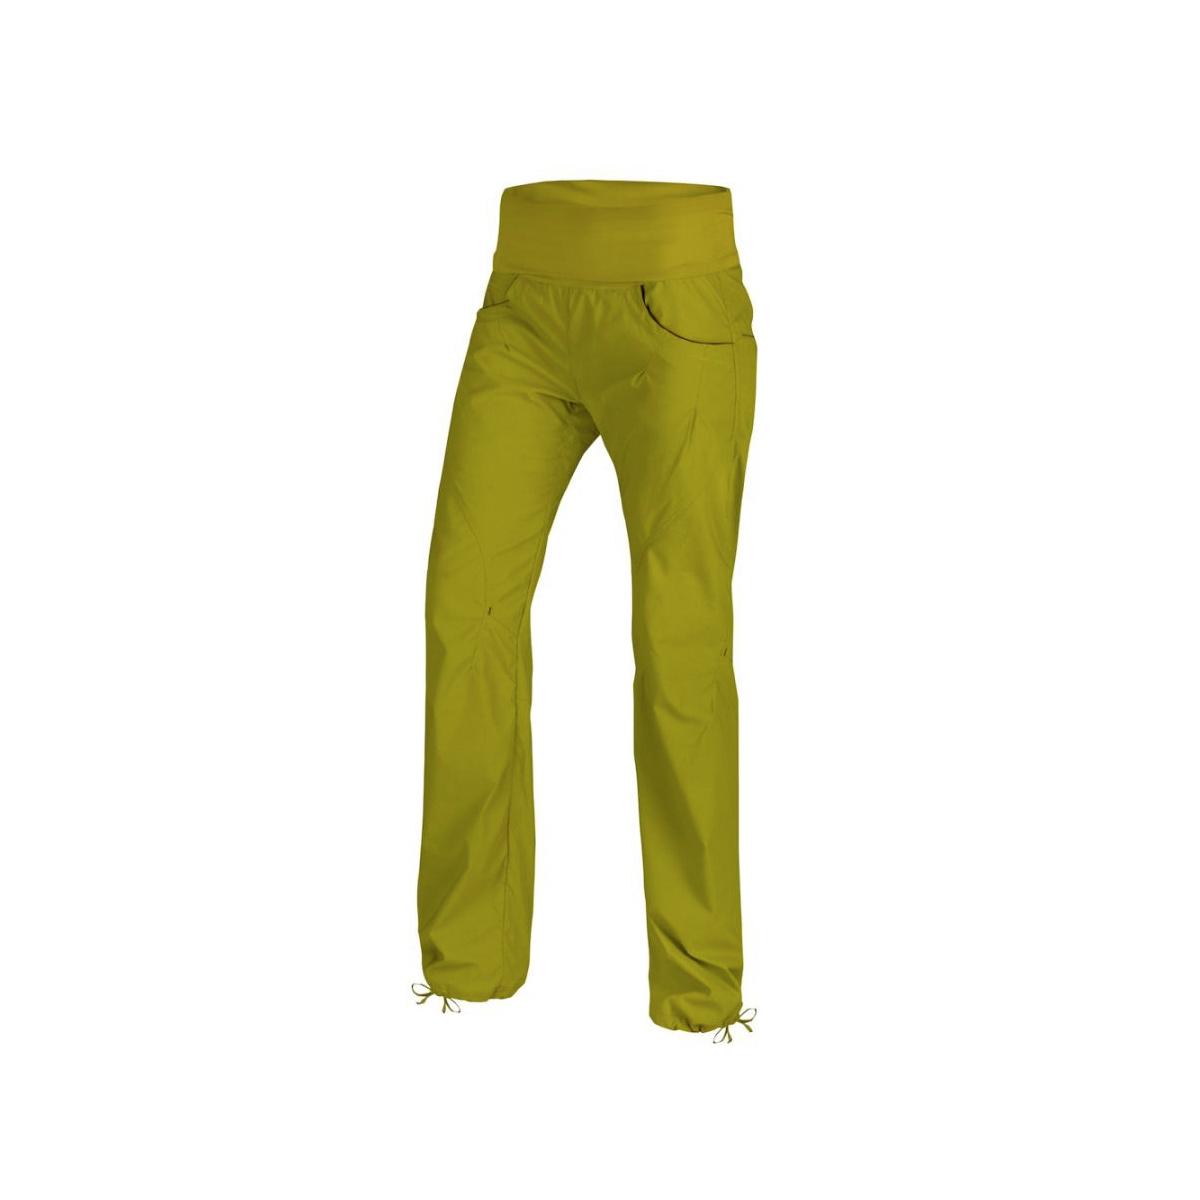 search for latest on wholesale promotion Noya Pants Women